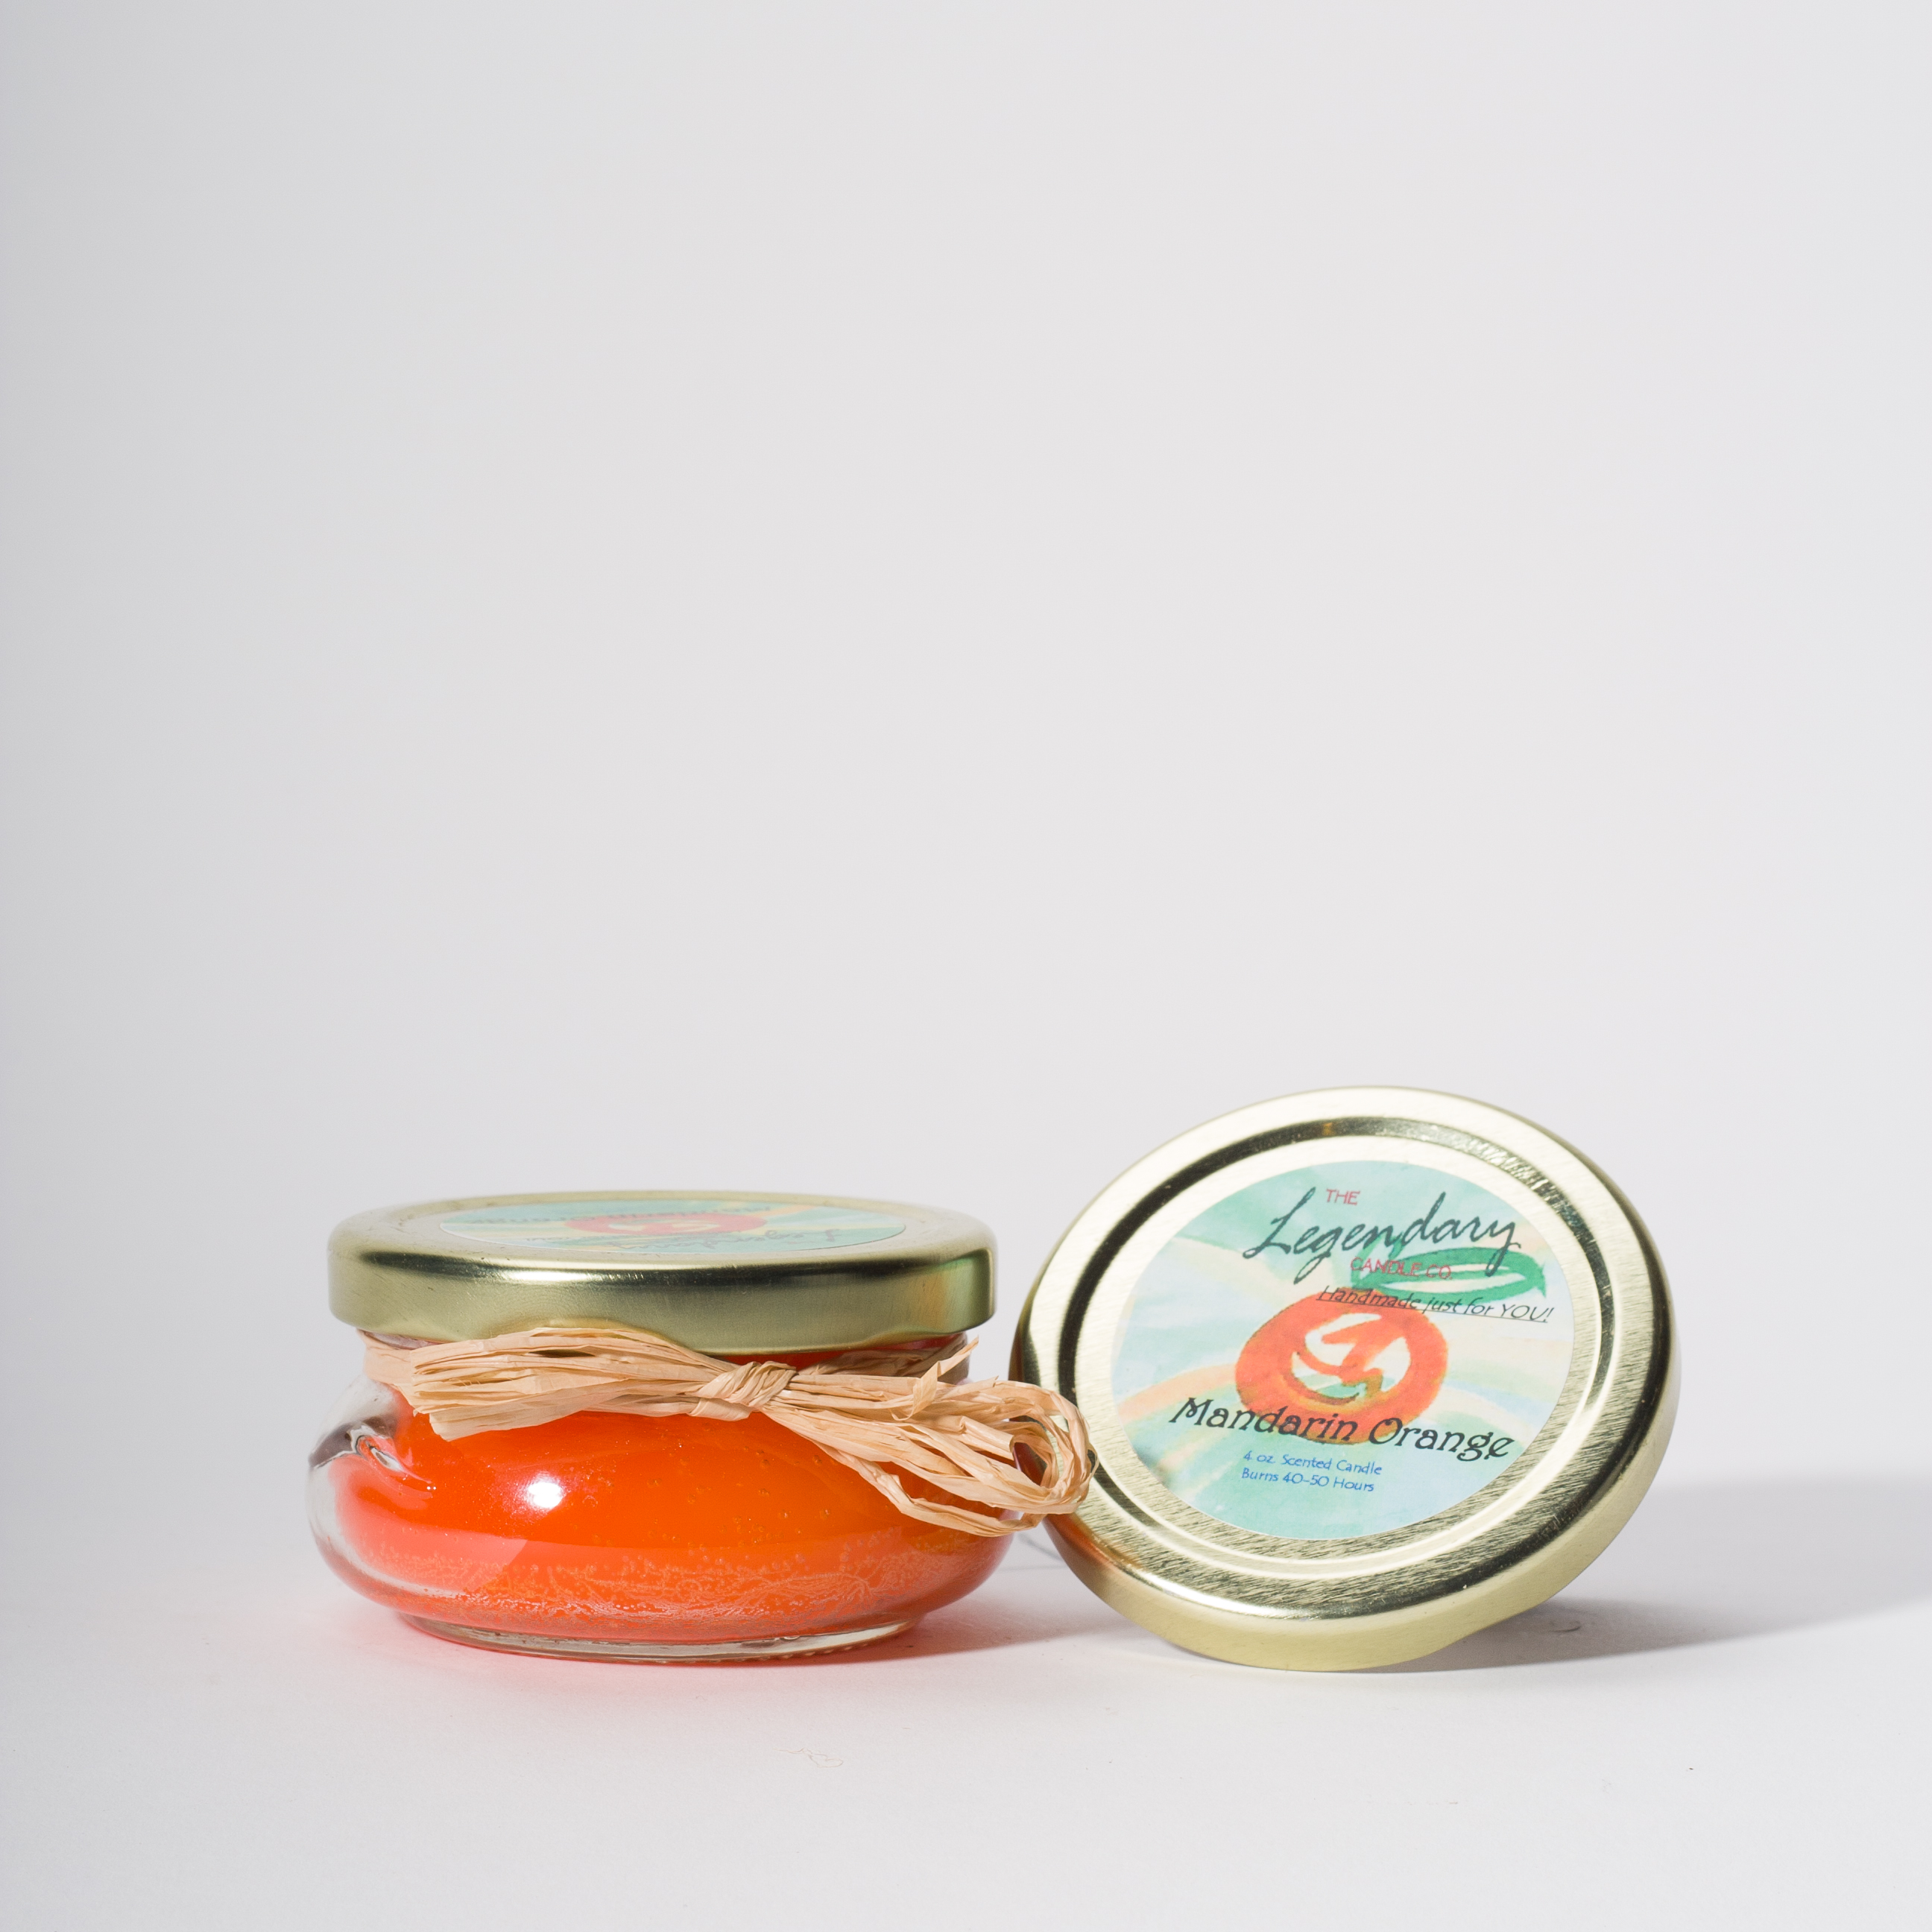 4 Ounce Mandarin Orange Scented Tureen Jar Candle